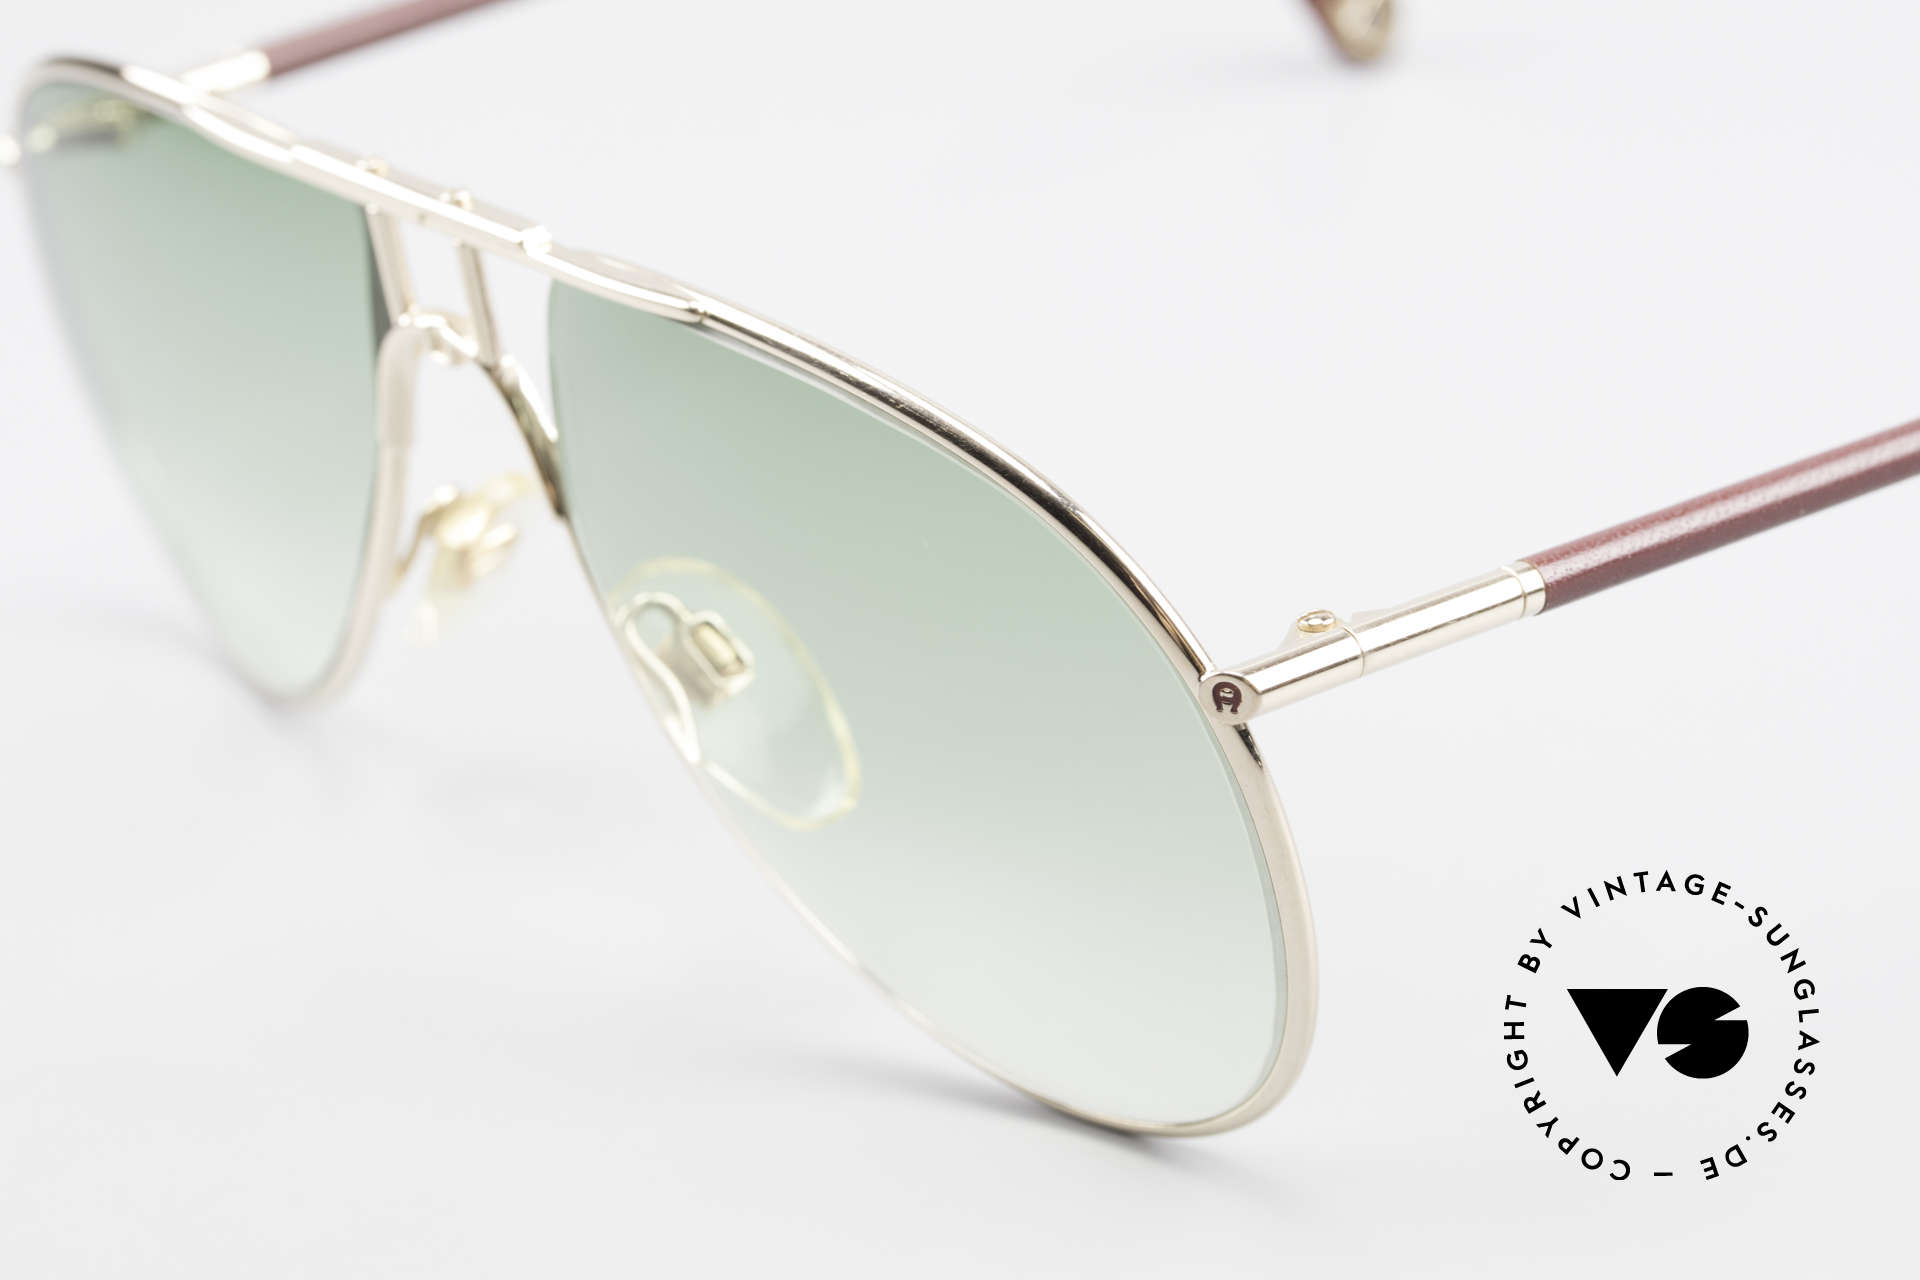 Aigner EA3 Rare 80's Vintage Sunglasses, a true vintage 'MUST-HAVE' for all gentlemen, out there!, Made for Men